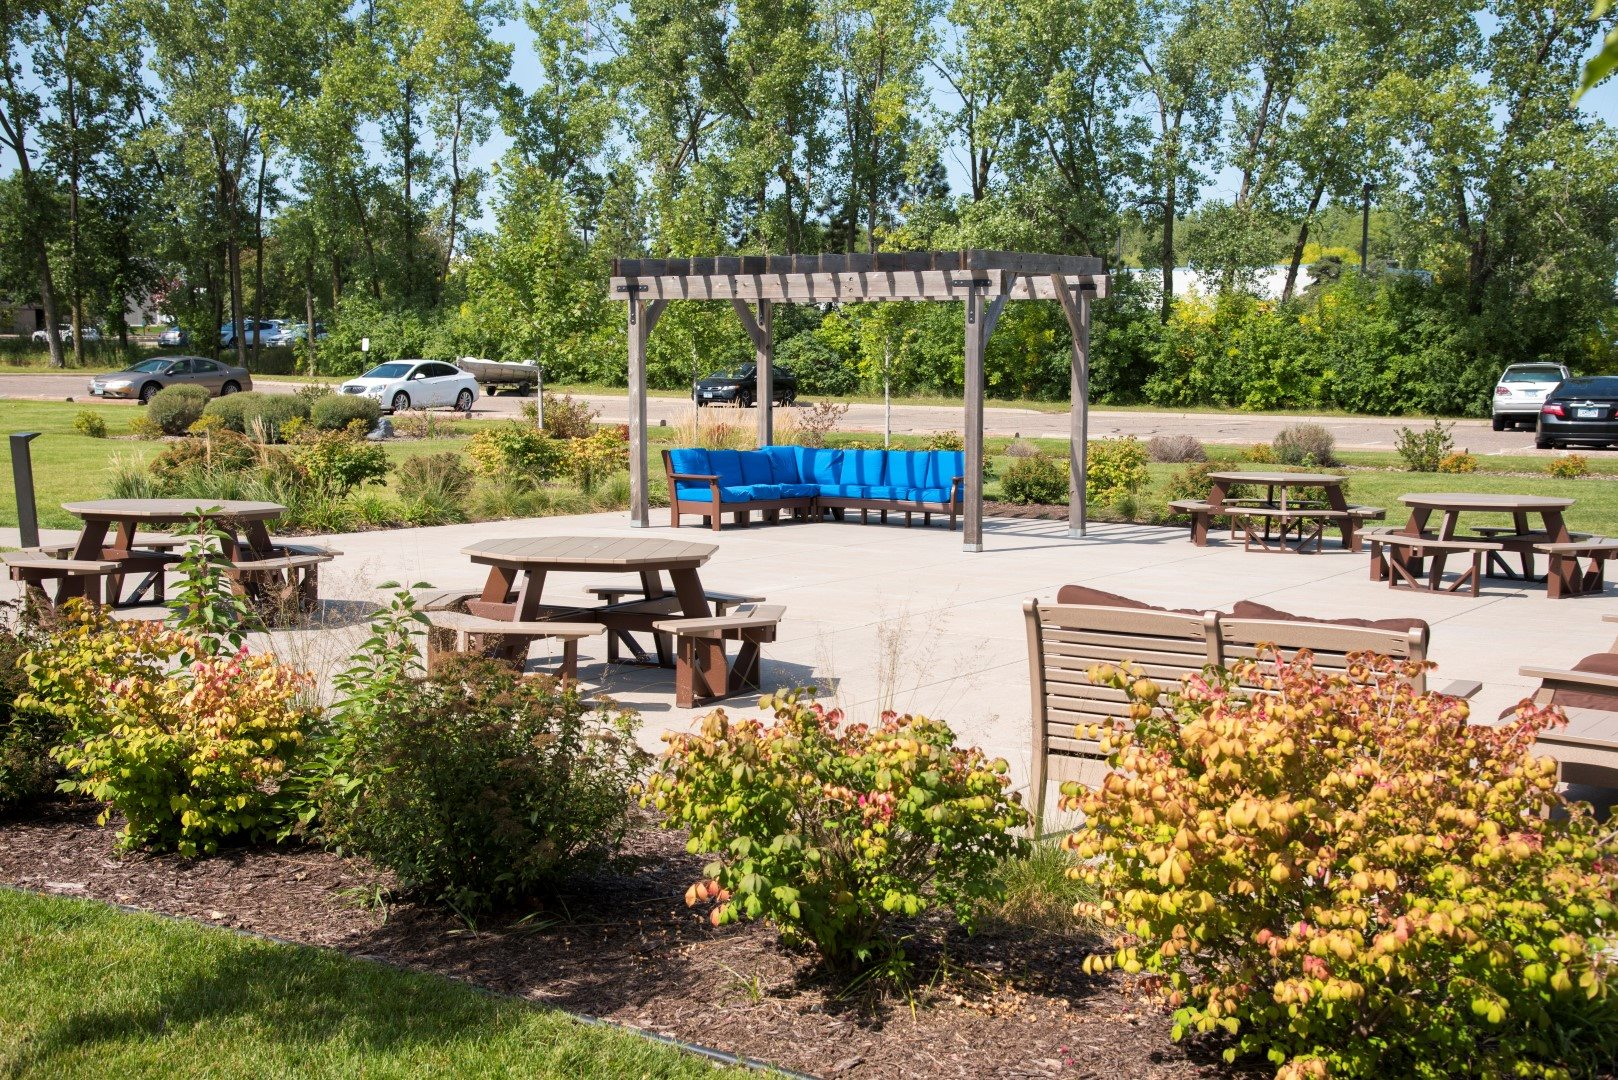 Picnic area at Shorview Grand apartments in Shoreview